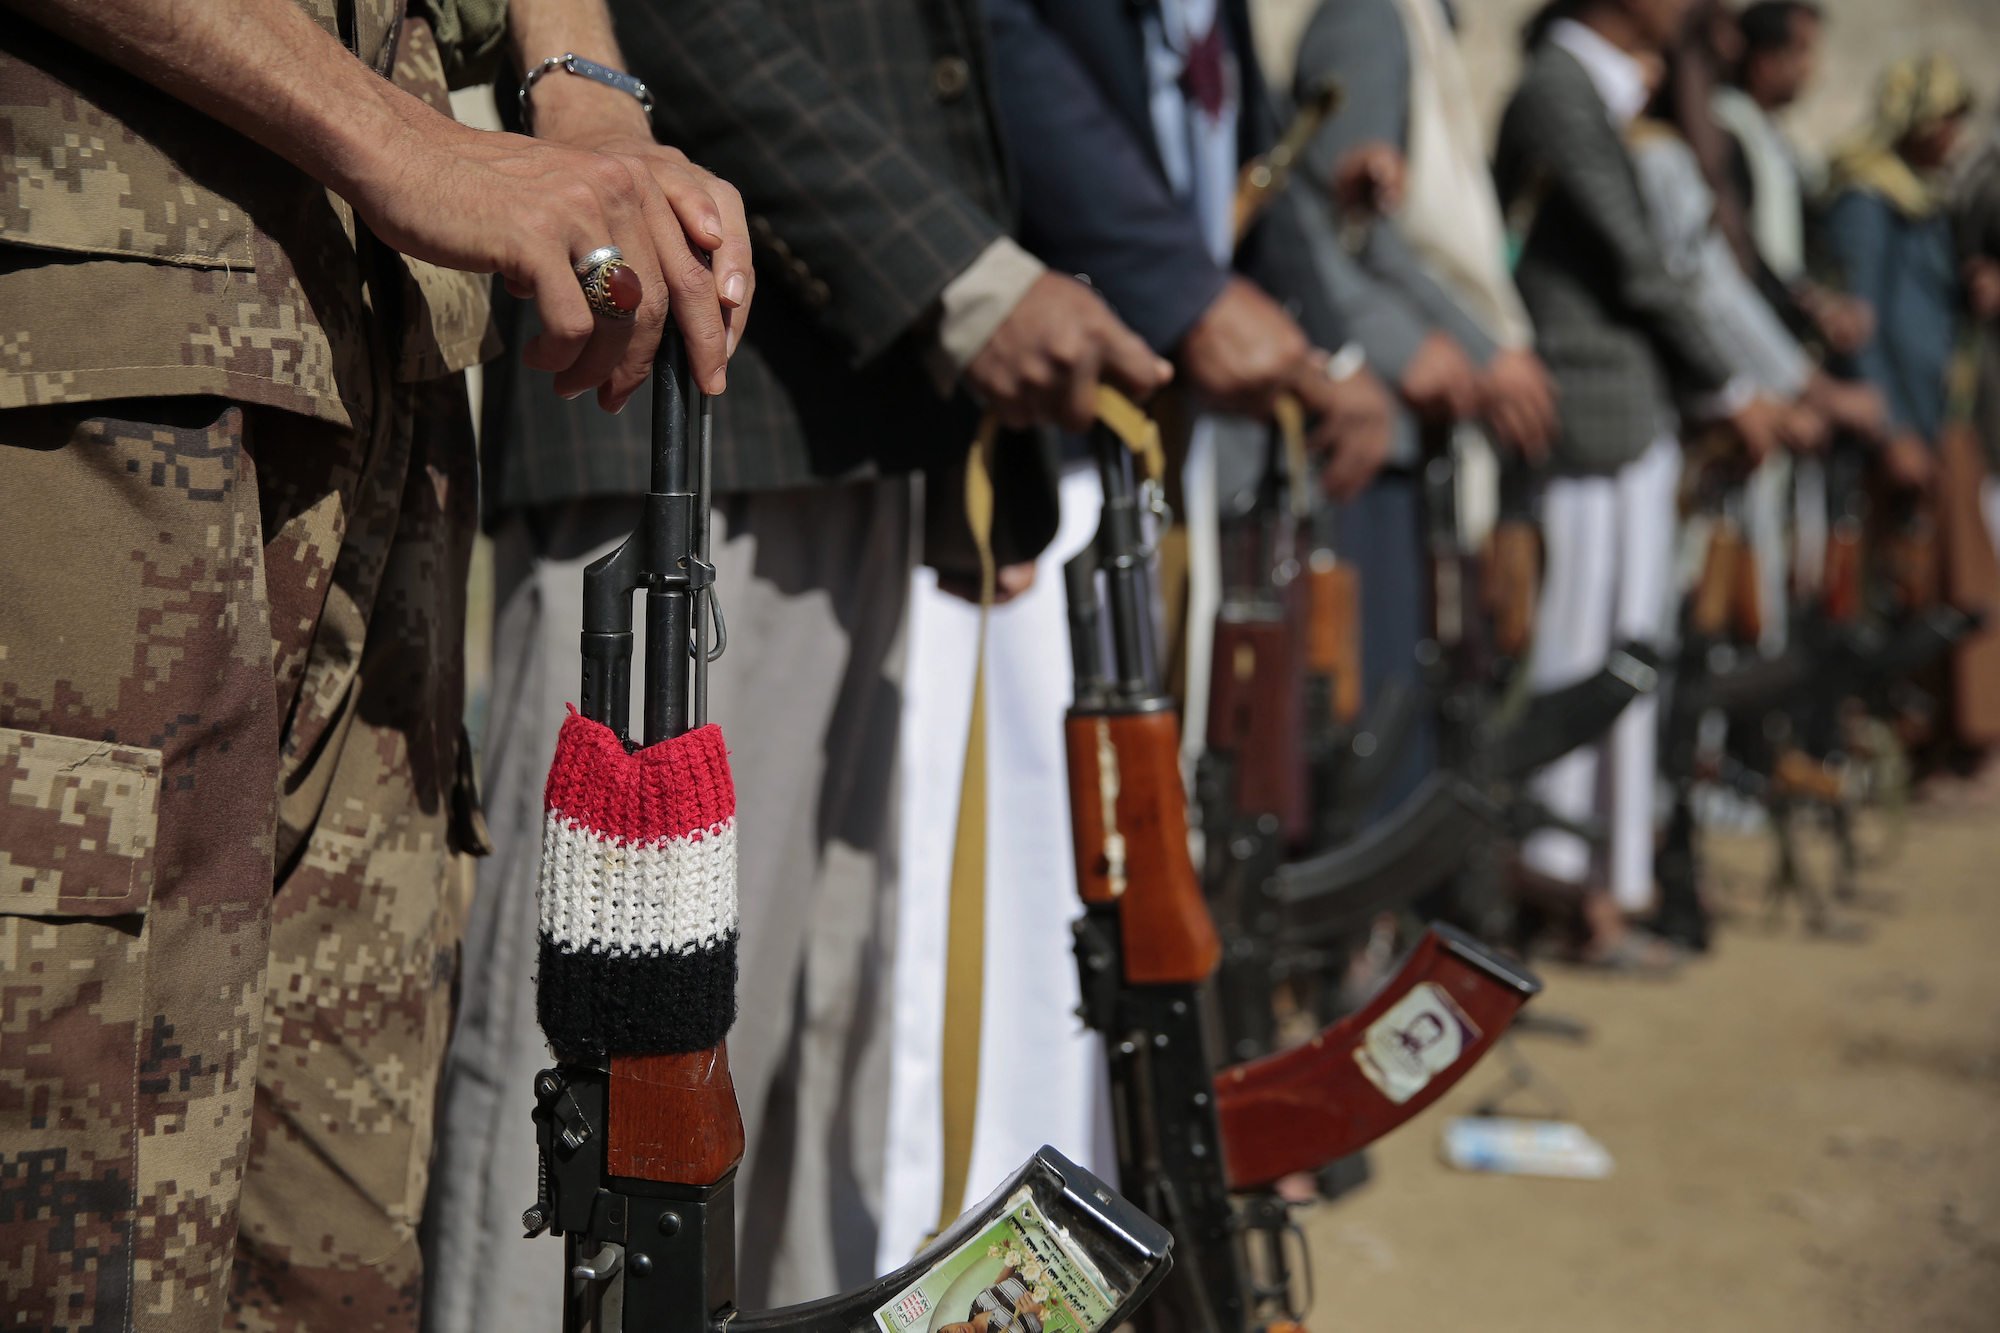 Tribesmen loyal to Houthi rebels attend a gathering in Sanaa Dec. 13, 2018 to show their support for the ongoing peace talks in Sweden addressing the war in Yemen. (AP Photo/Hani Mohammed)